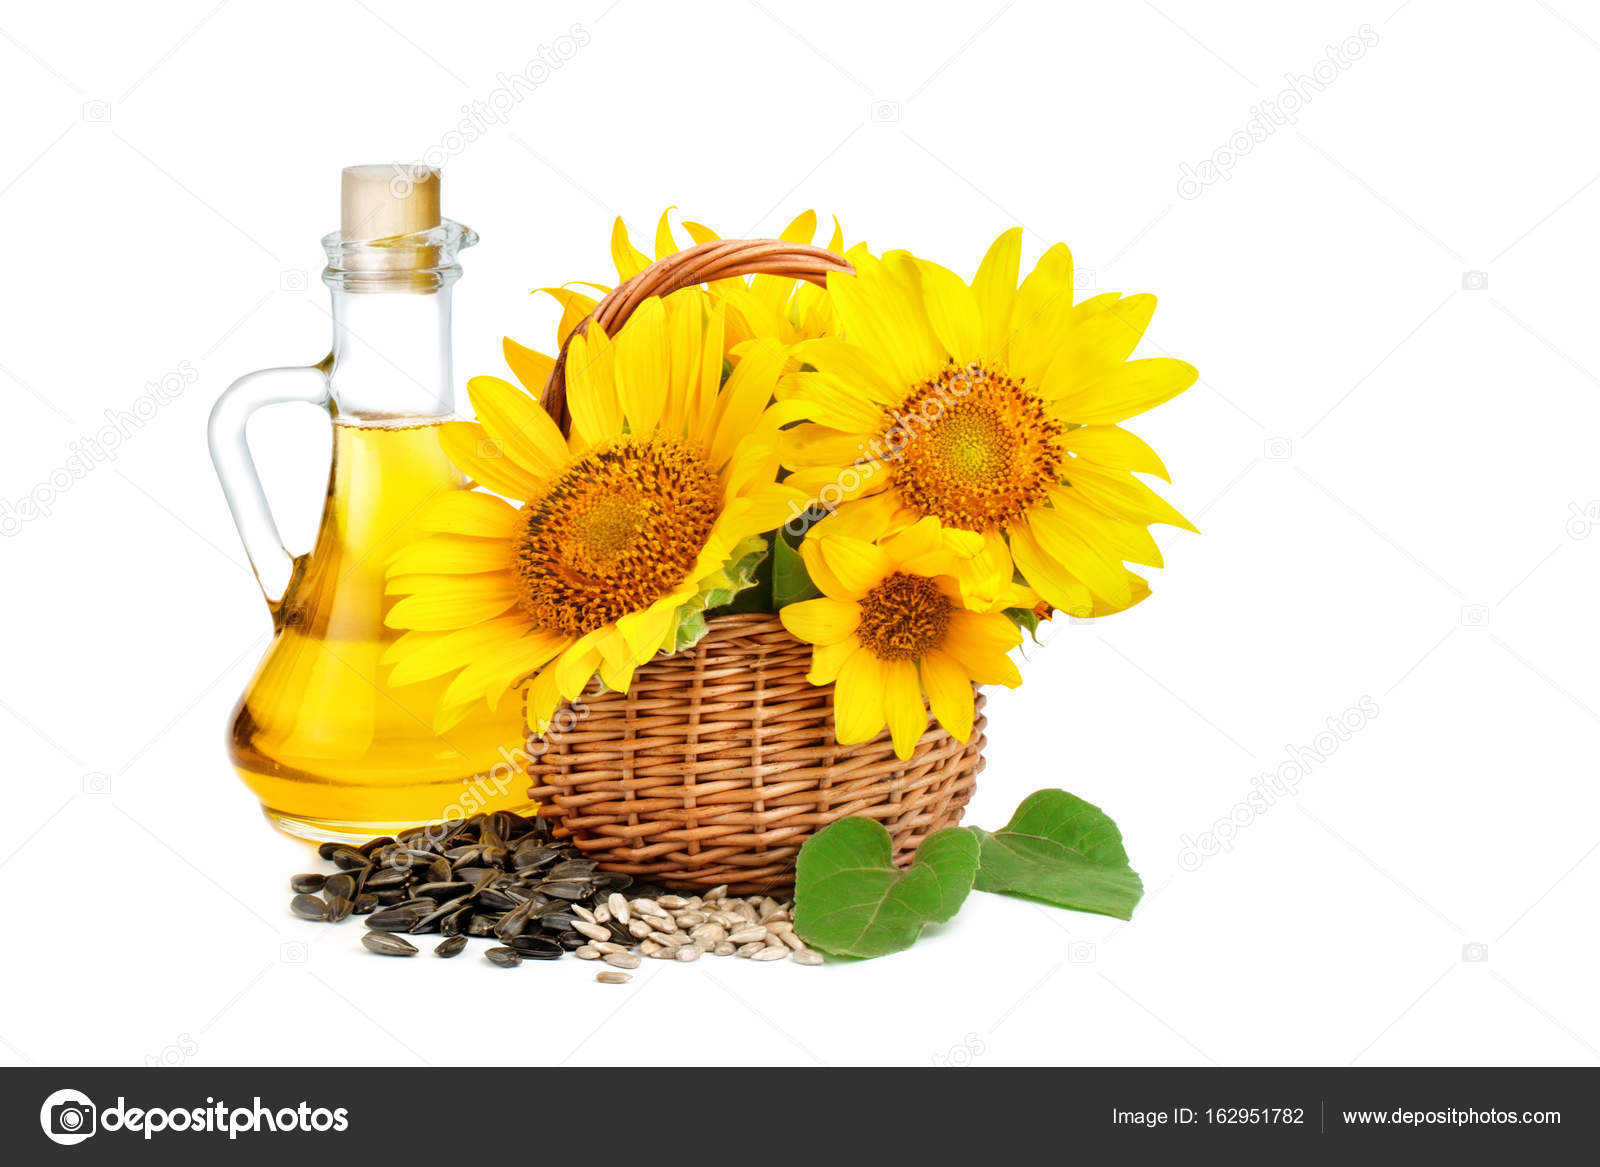 Beautiful Flowers Of Sunflowers In A Rustic Basket And Sunflower Oil On White Background An Isolated Object Photo By NyuraUsova